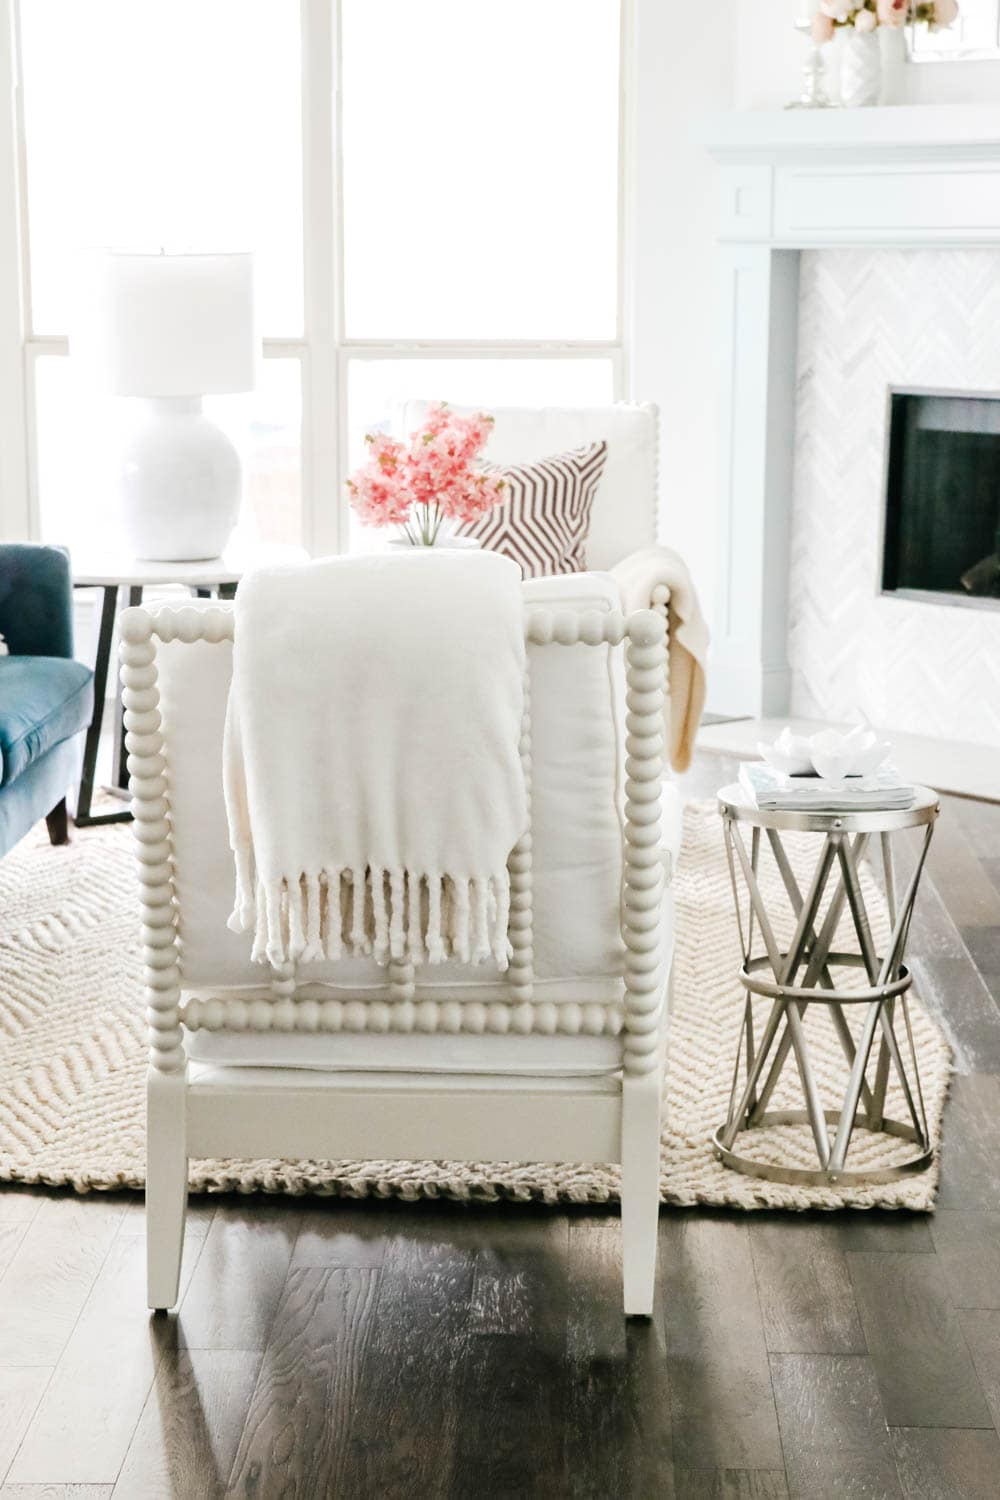 White spindle chair in coastal style living room. #livingroom #livingroominspo #hometour #ABlissfulNest